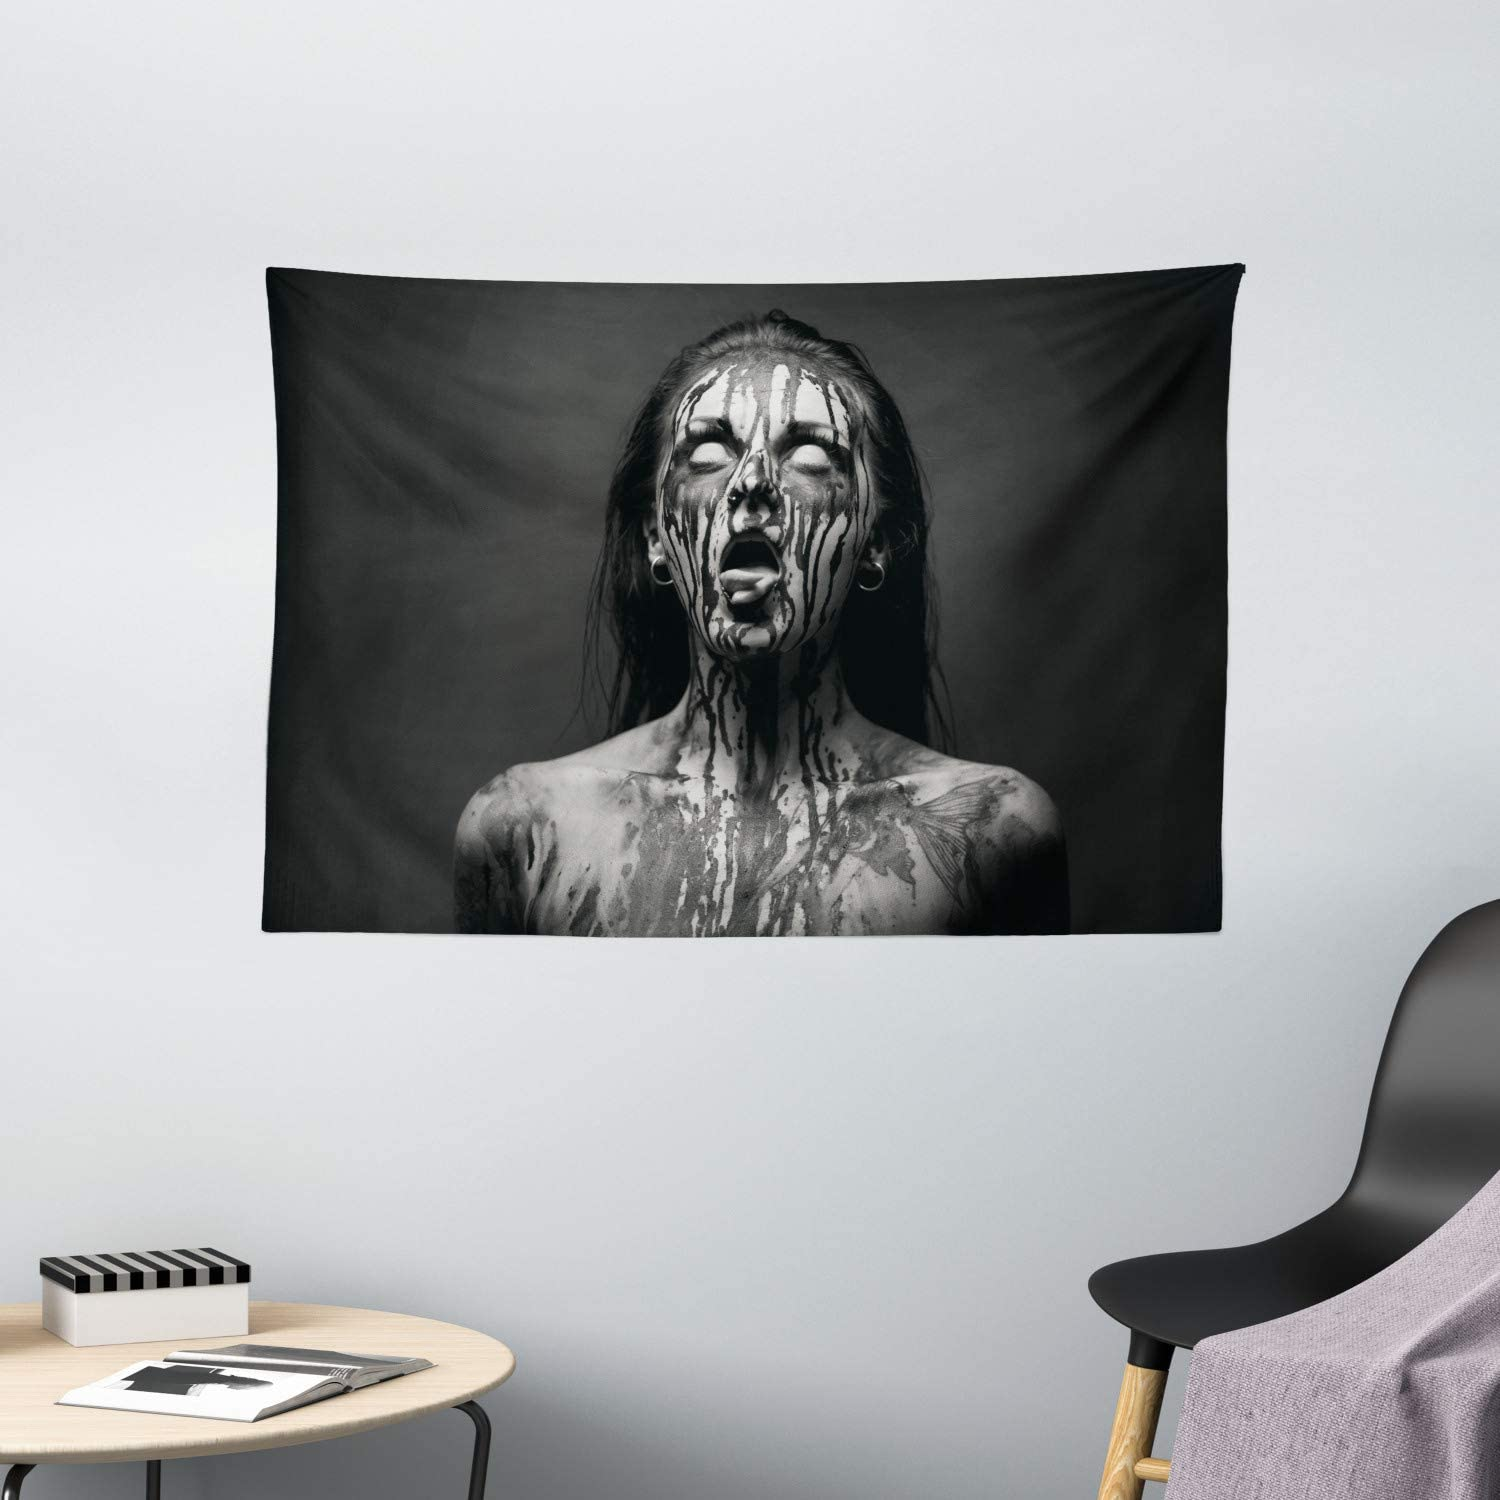 Horror Tapestry Wall Hanging Spooky Creepy Scream Scary Tapestries Dorm Room Bedroom Decor Art Printed In The Usa Small To Giant Sizes Home Kitchen Com Home Decor